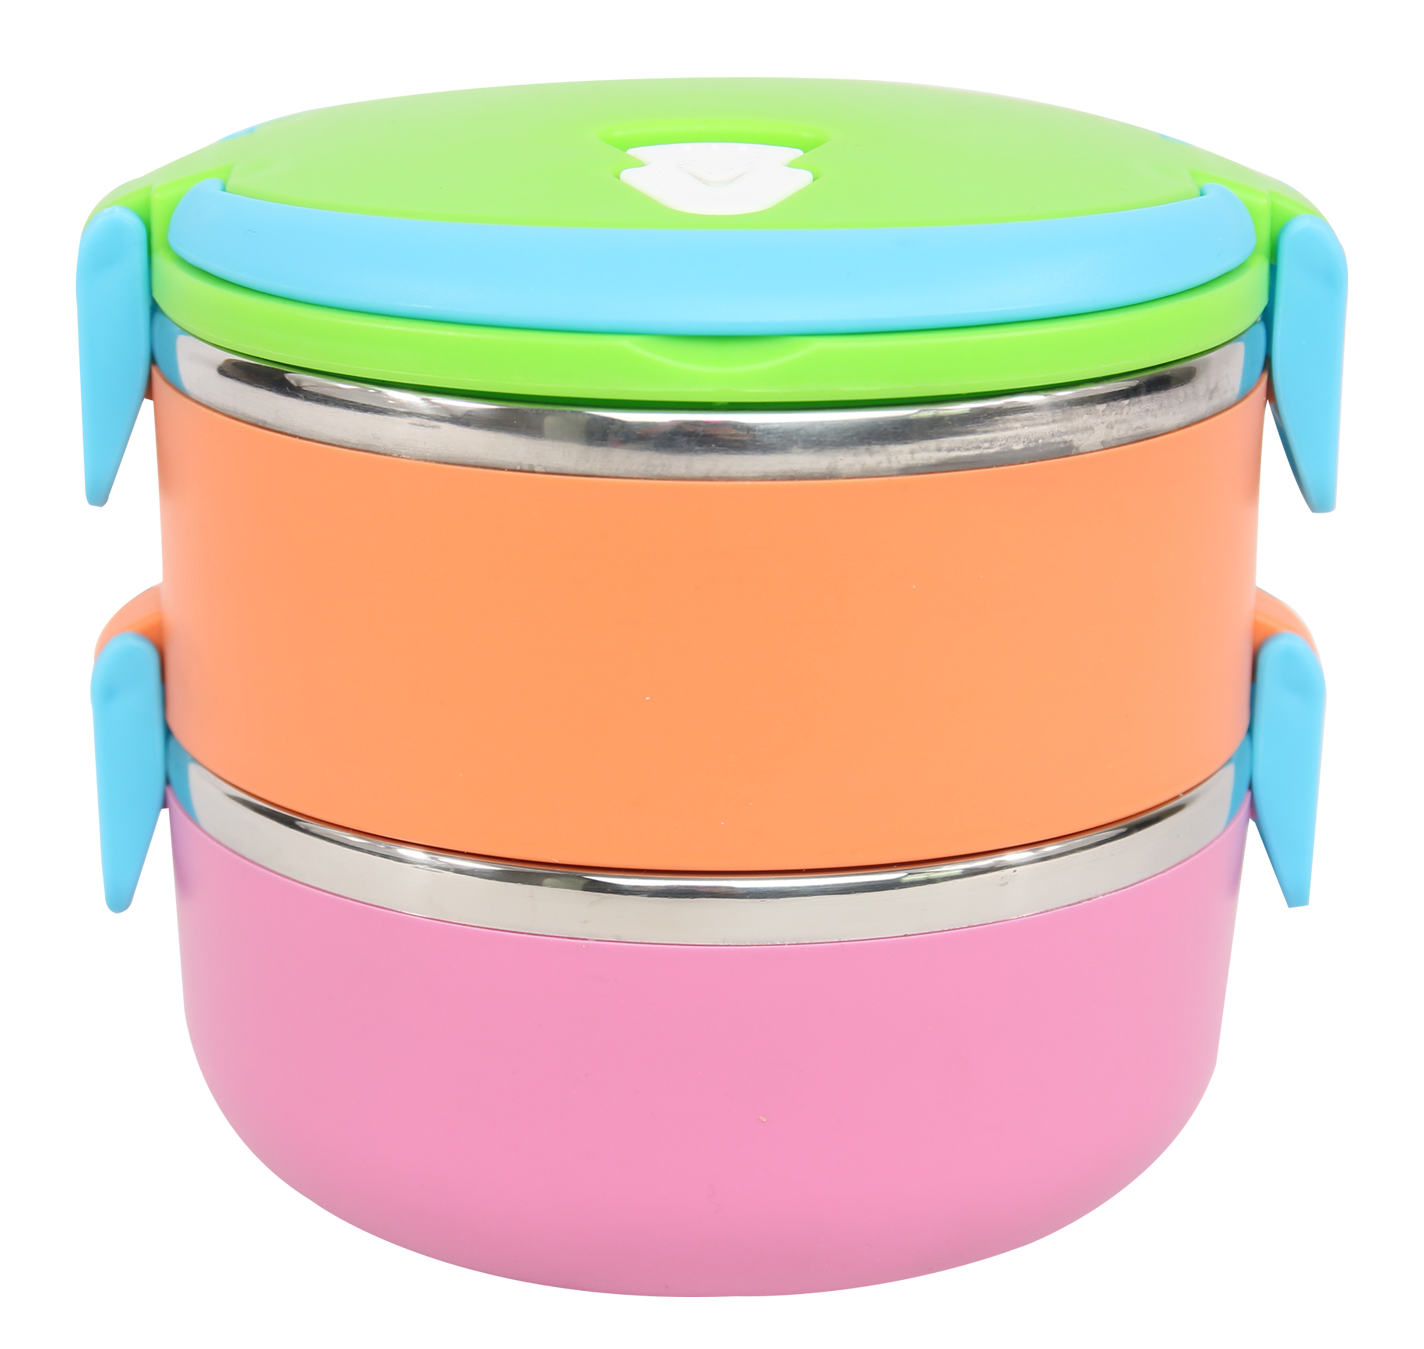 Lunch png transparent image. Lunchbox clipart tool box